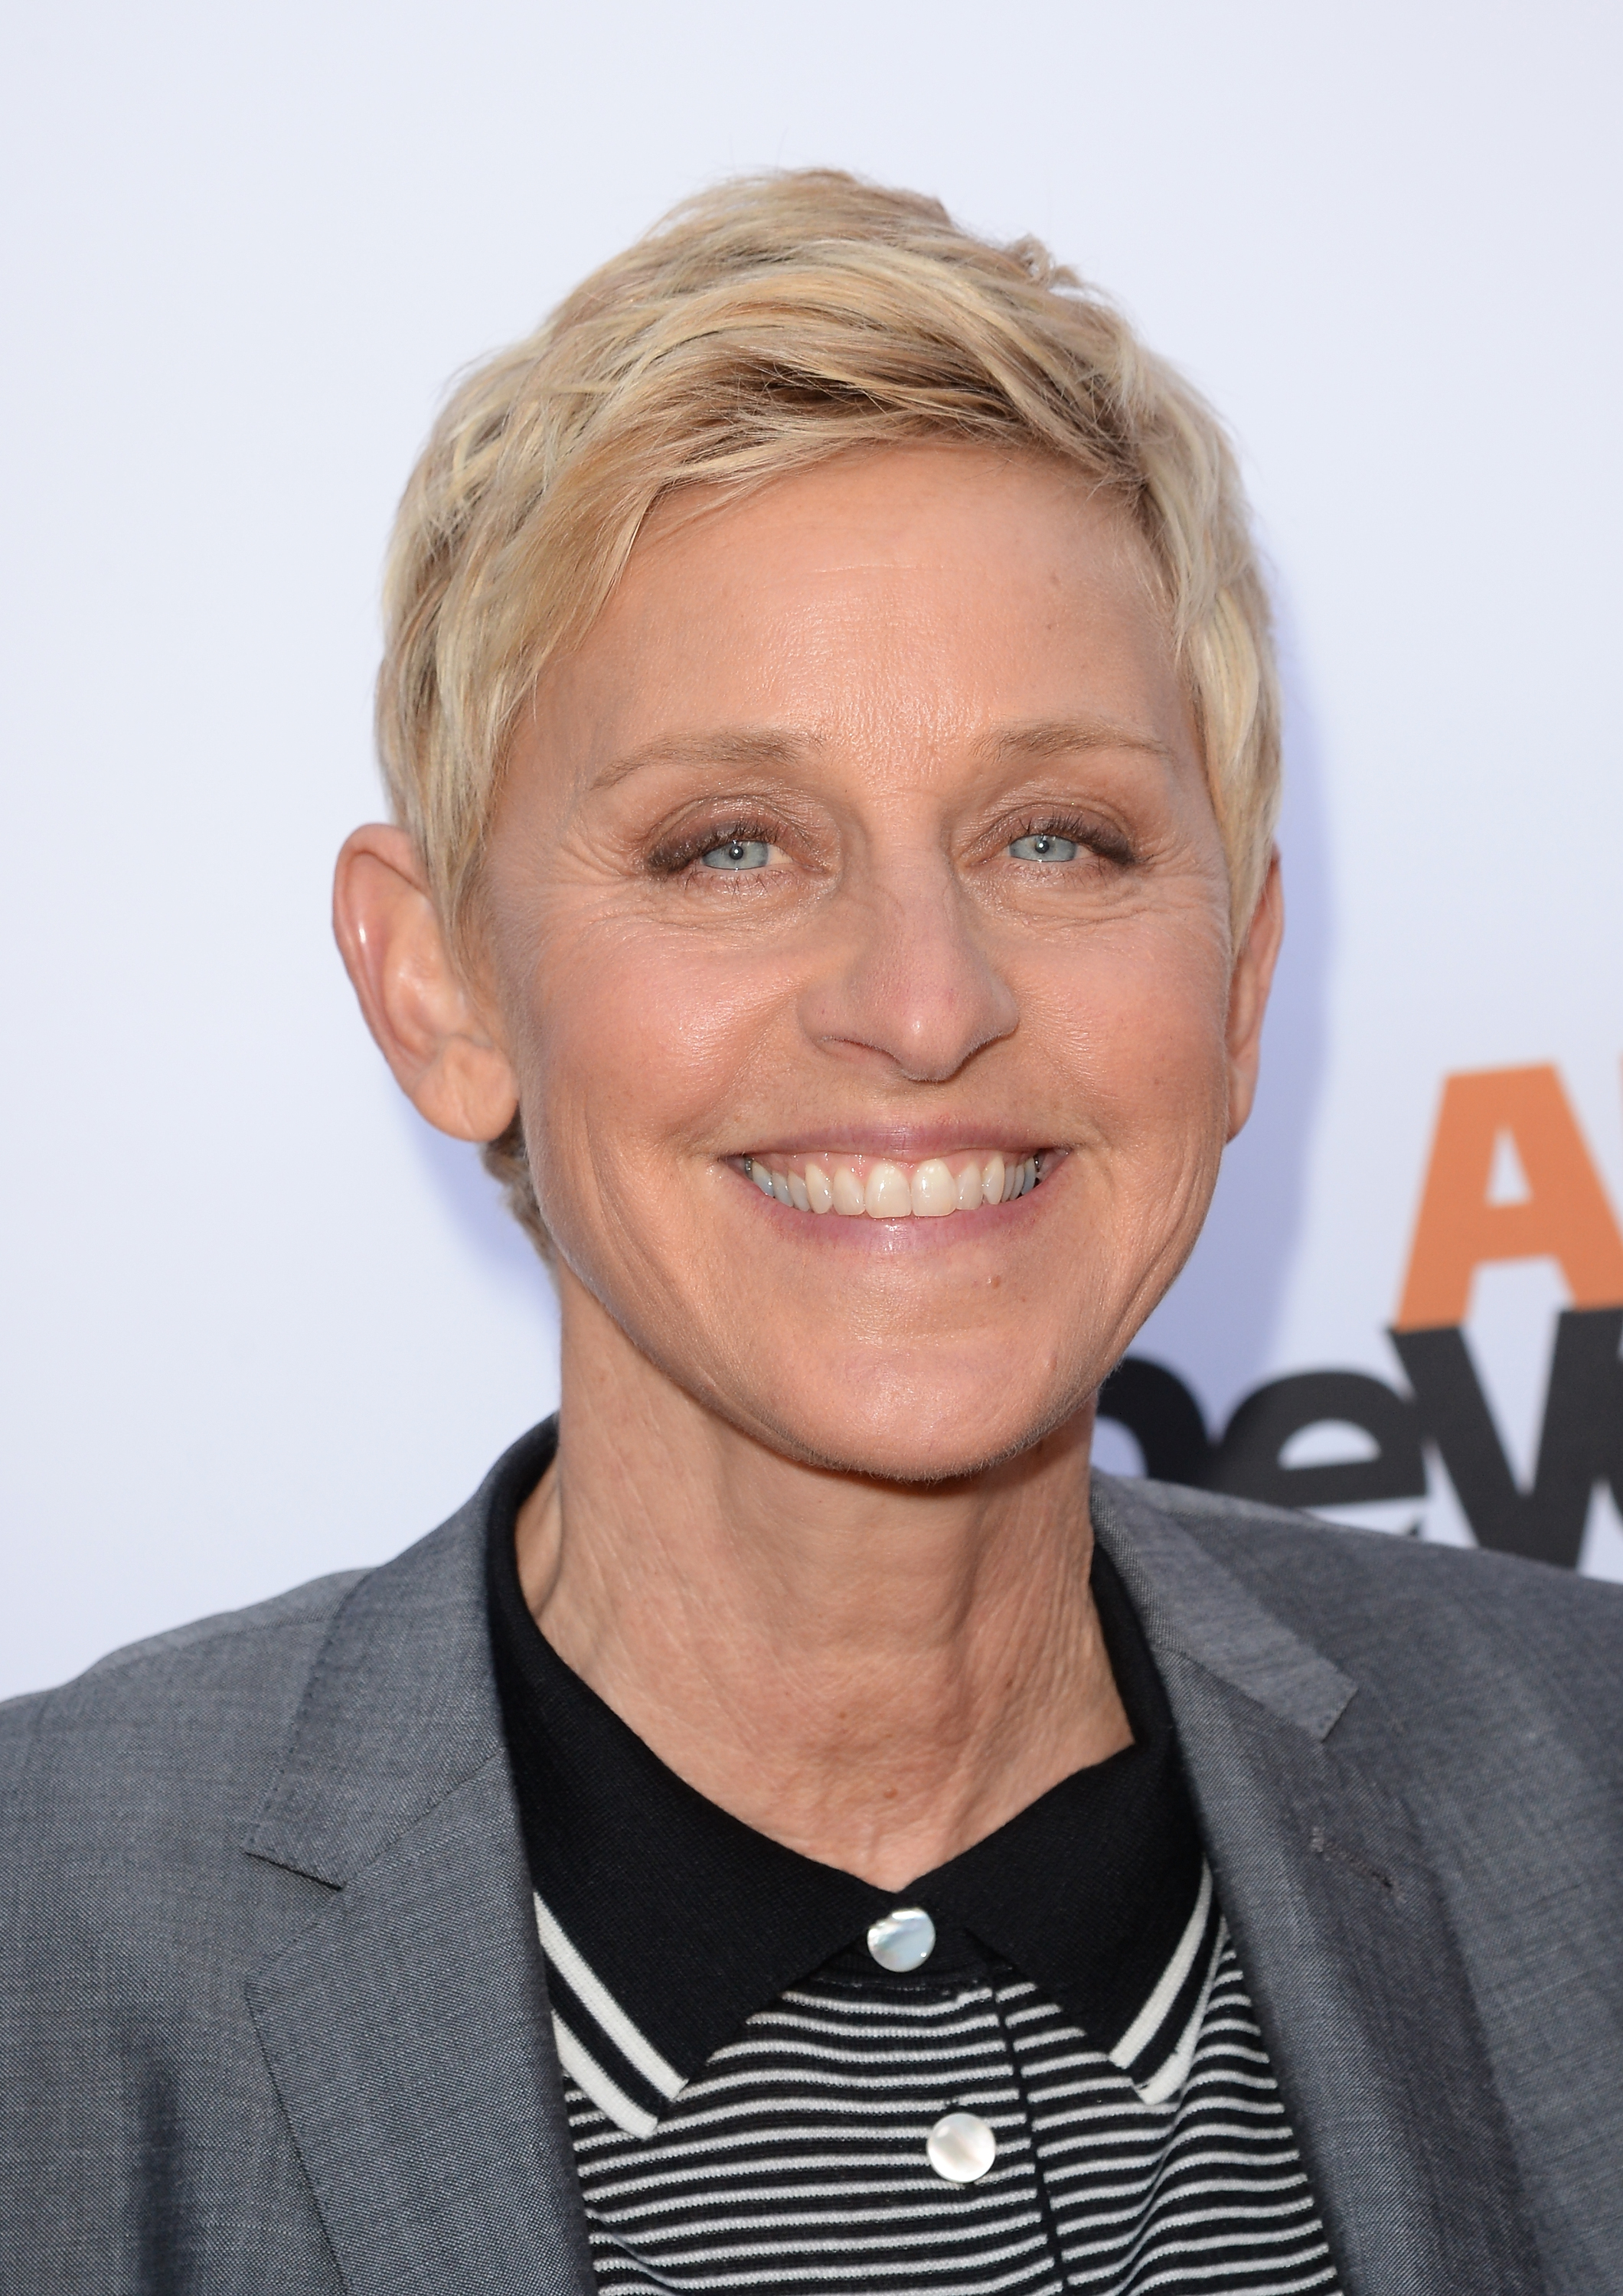 TV personality Ellen DeGeneres on April 29, 2013 in Hollywood, California.